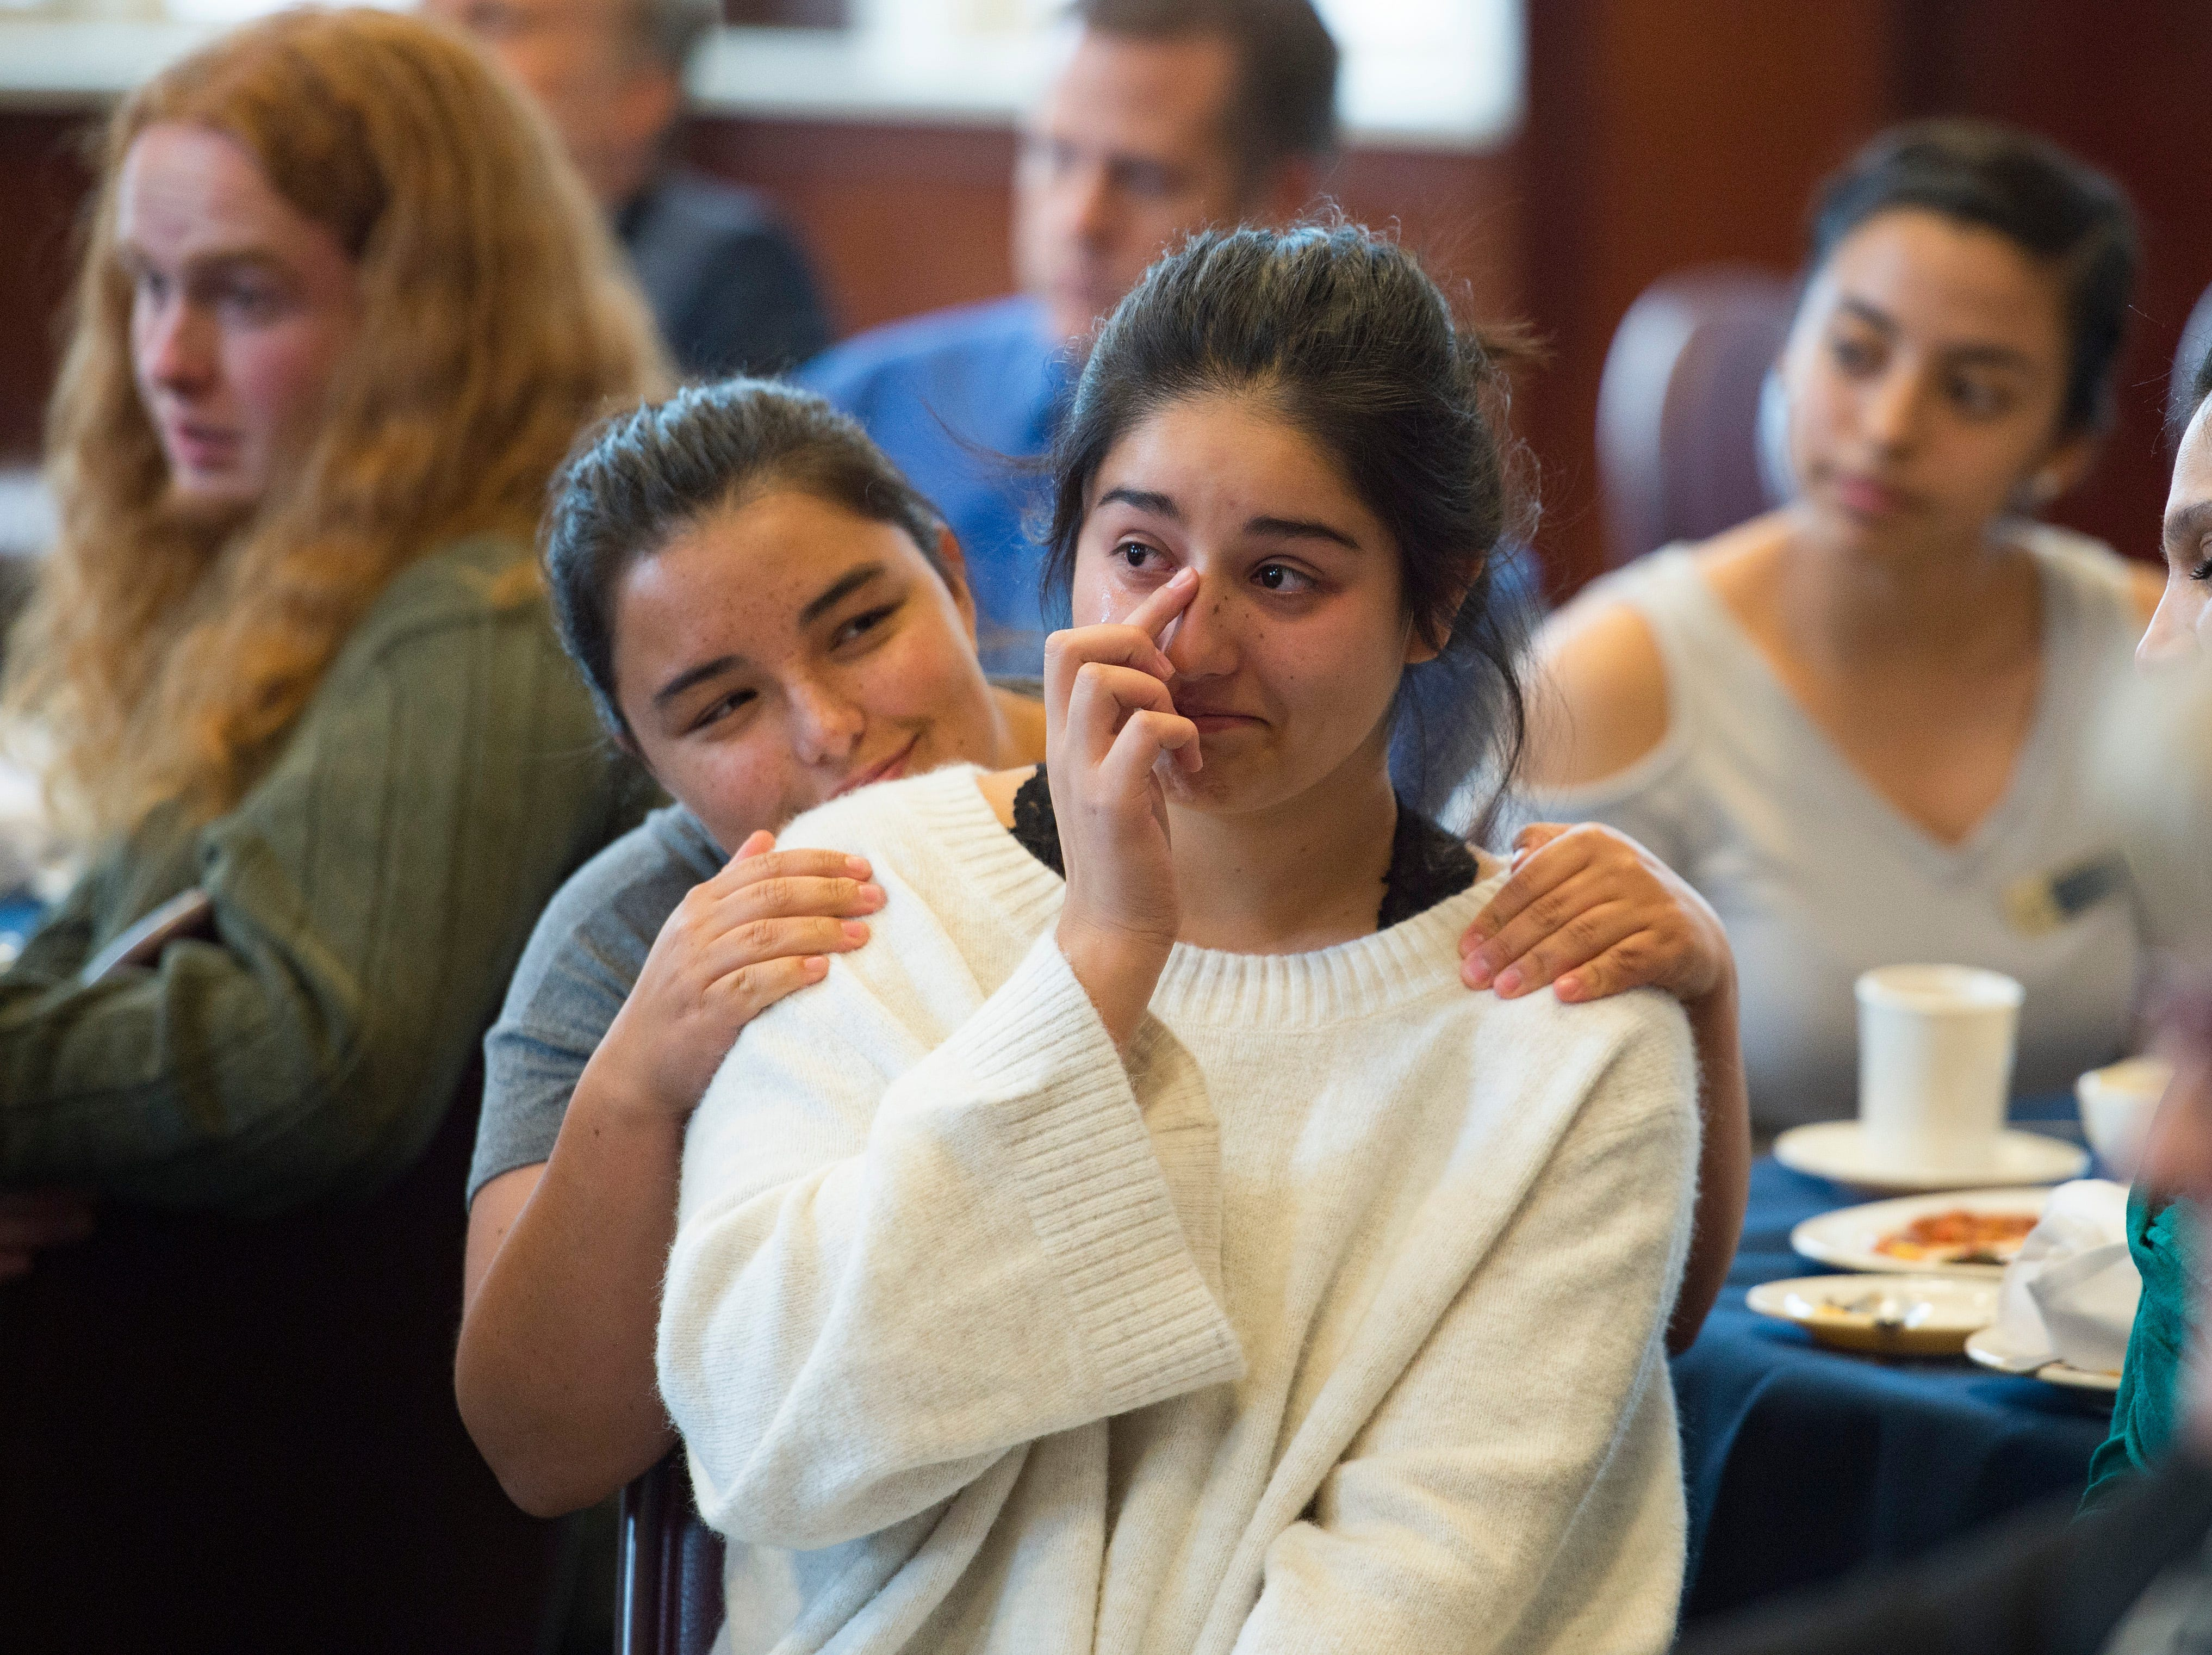 Anairis Trevizo wipes a tear from her eye as she is recognized as a First Class Scholar during the Coloradoan's First Class banquet at the University of Northern Colorado in Greeley on Saturday, October 6, 2018. First Class is a program that supports first-generation students in Northern Colorado. The program is now in its third year and is a partnership between The Coloradoan and Aims Community College, Fort Collins Lions Club, Front Range Community College, Colorado State University, Canvas Credit Union (formerly Public Service Credit Union) and University of Northern Colorado.